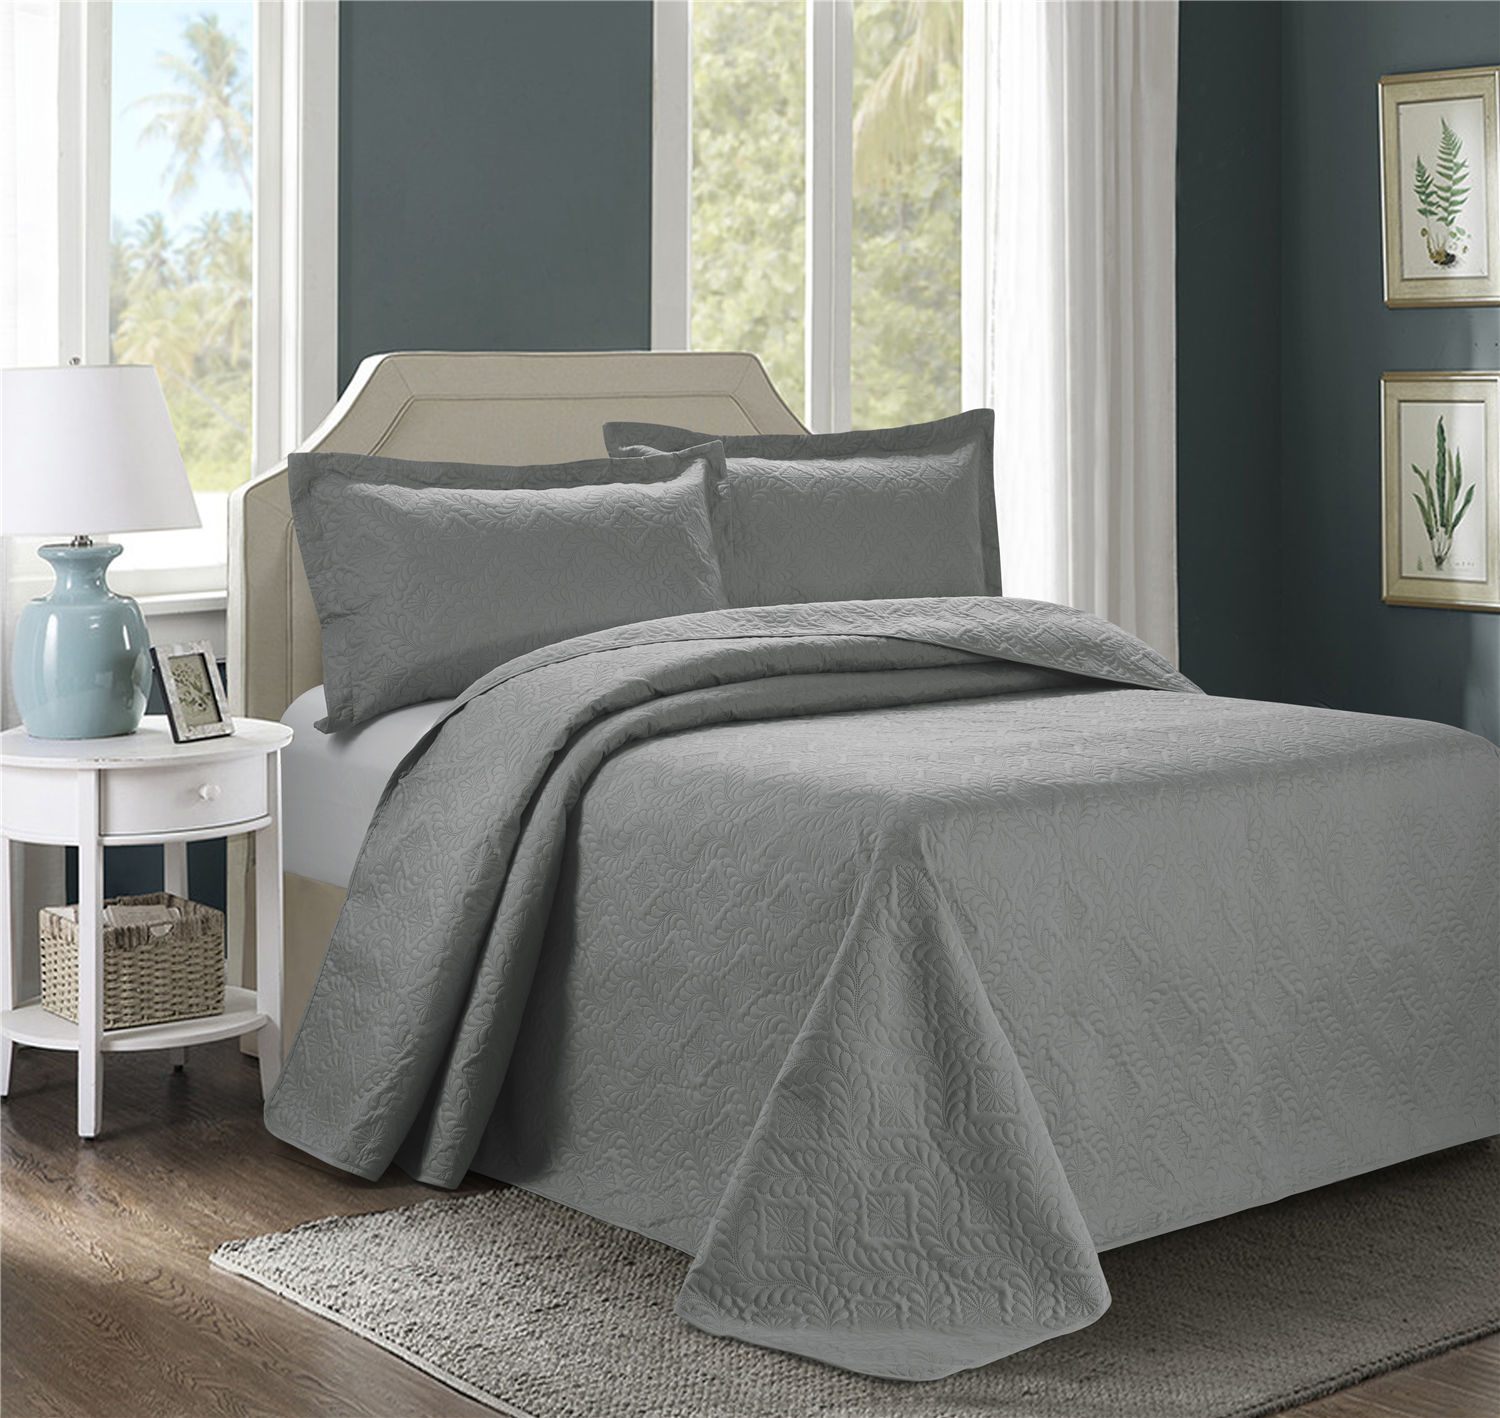 3 Piece Oversize Bedspread Burgundy Color -ESTANCIA Wisteria Ultrasonic Embossed Bedspread Set with Two Shams - Oversized Coverlet - Hypoallergenic,Fade Resistant,Wrinkle Resistant